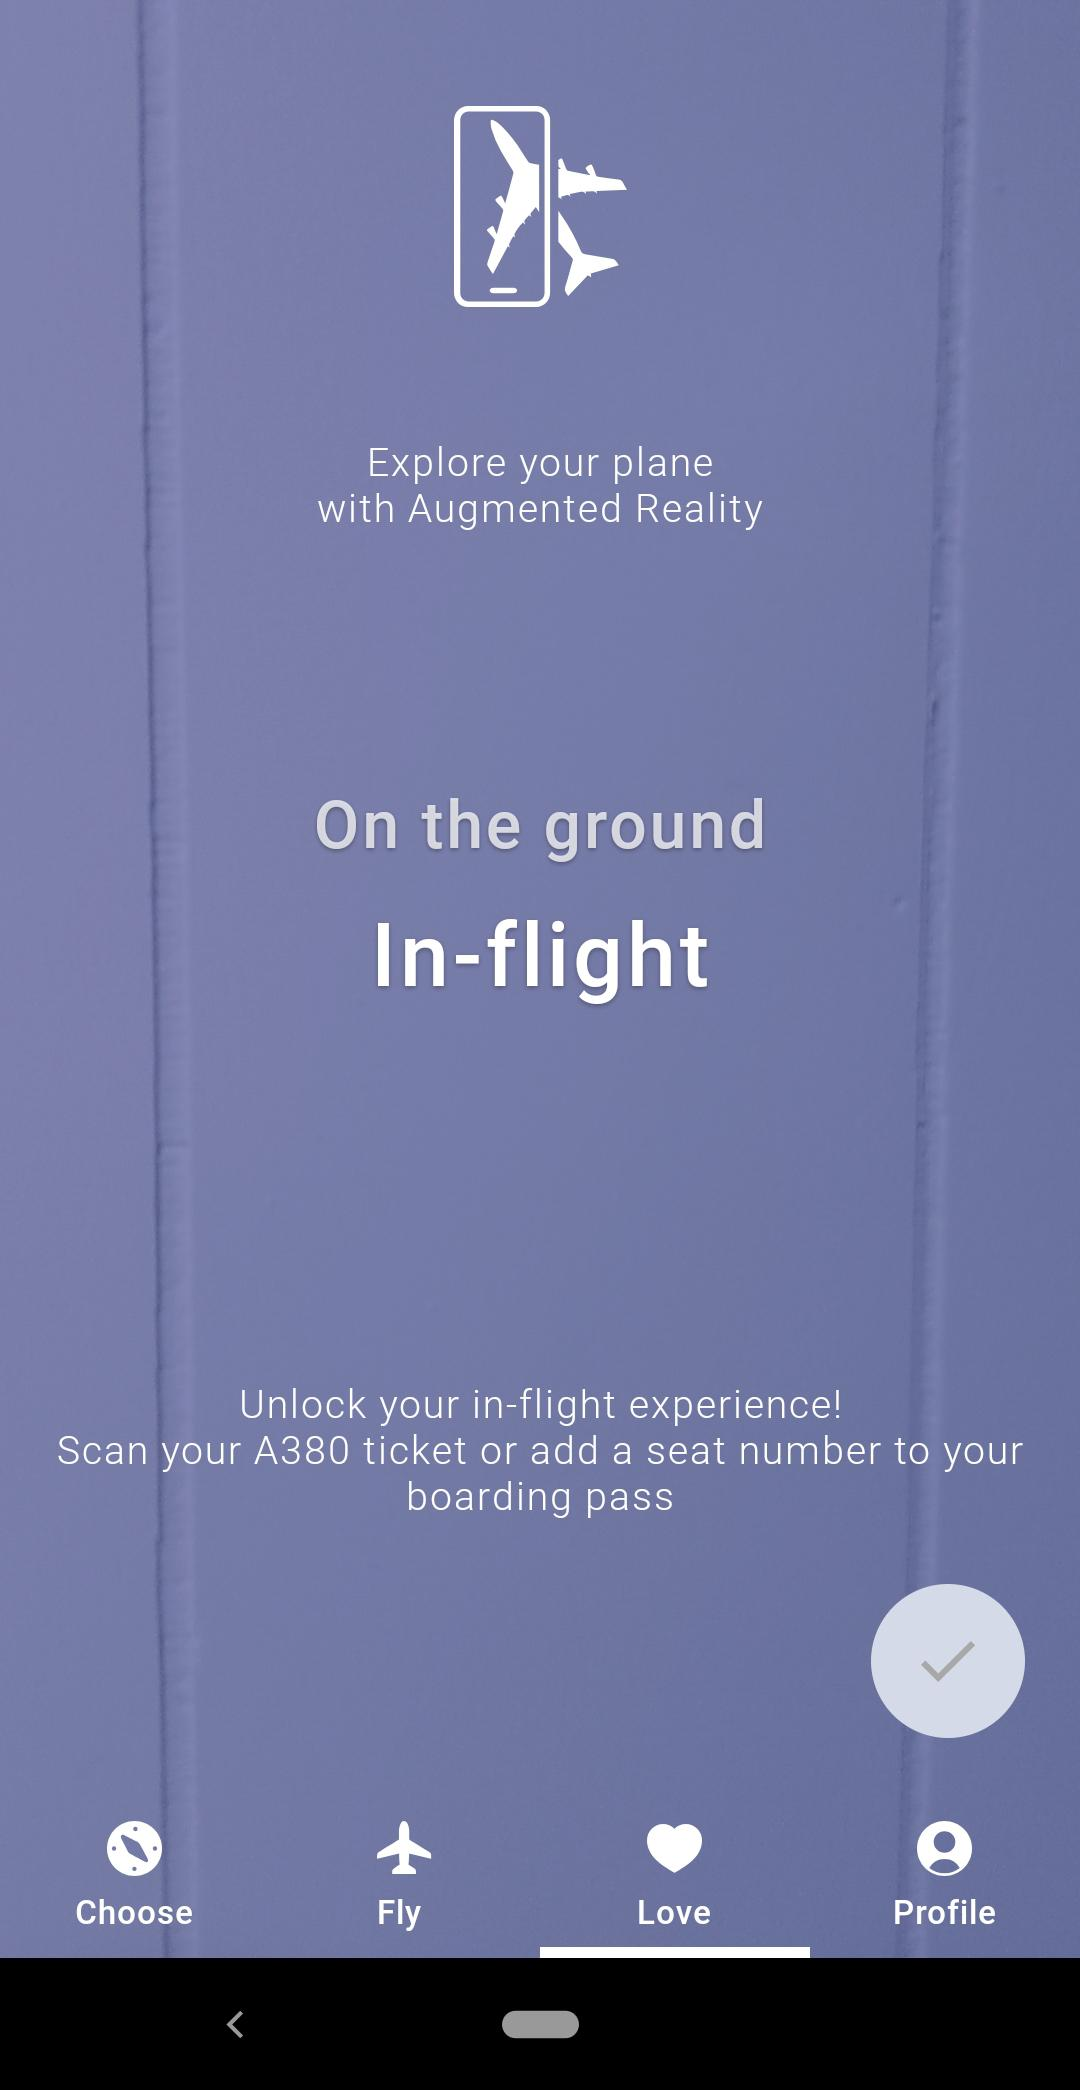 iflyA380 augmented reality mobile app for airplane passengers